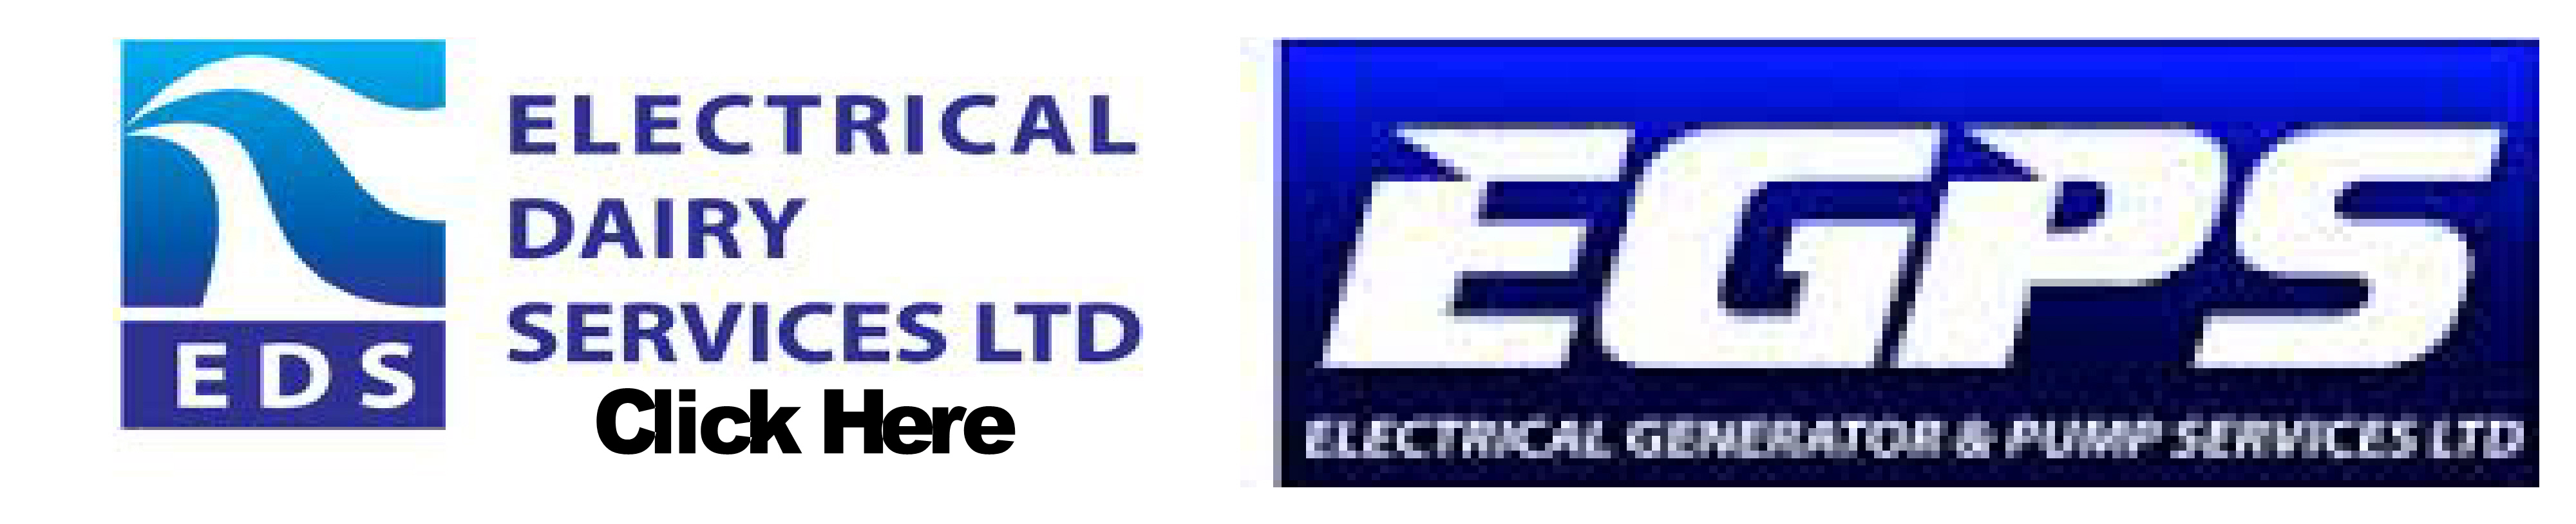 Electrical Dairy Services Ltd Electricians In Thurles